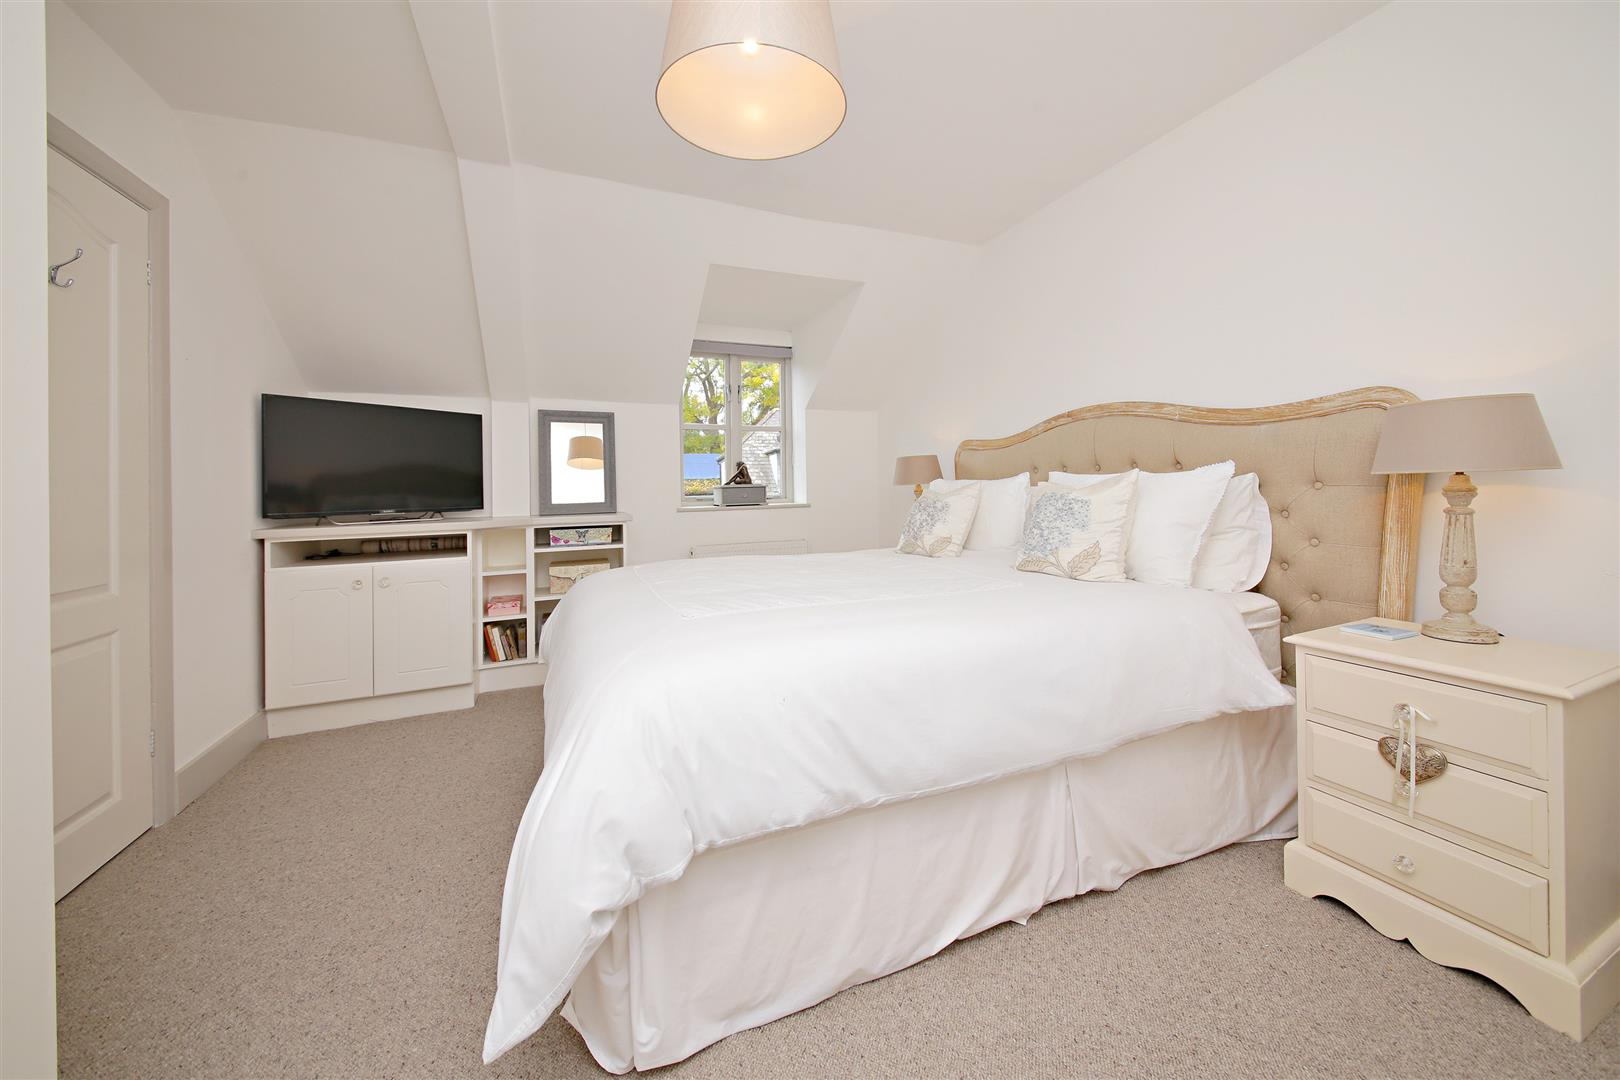 5 bed to rent in Letchmore Heath - (Property Image 12)